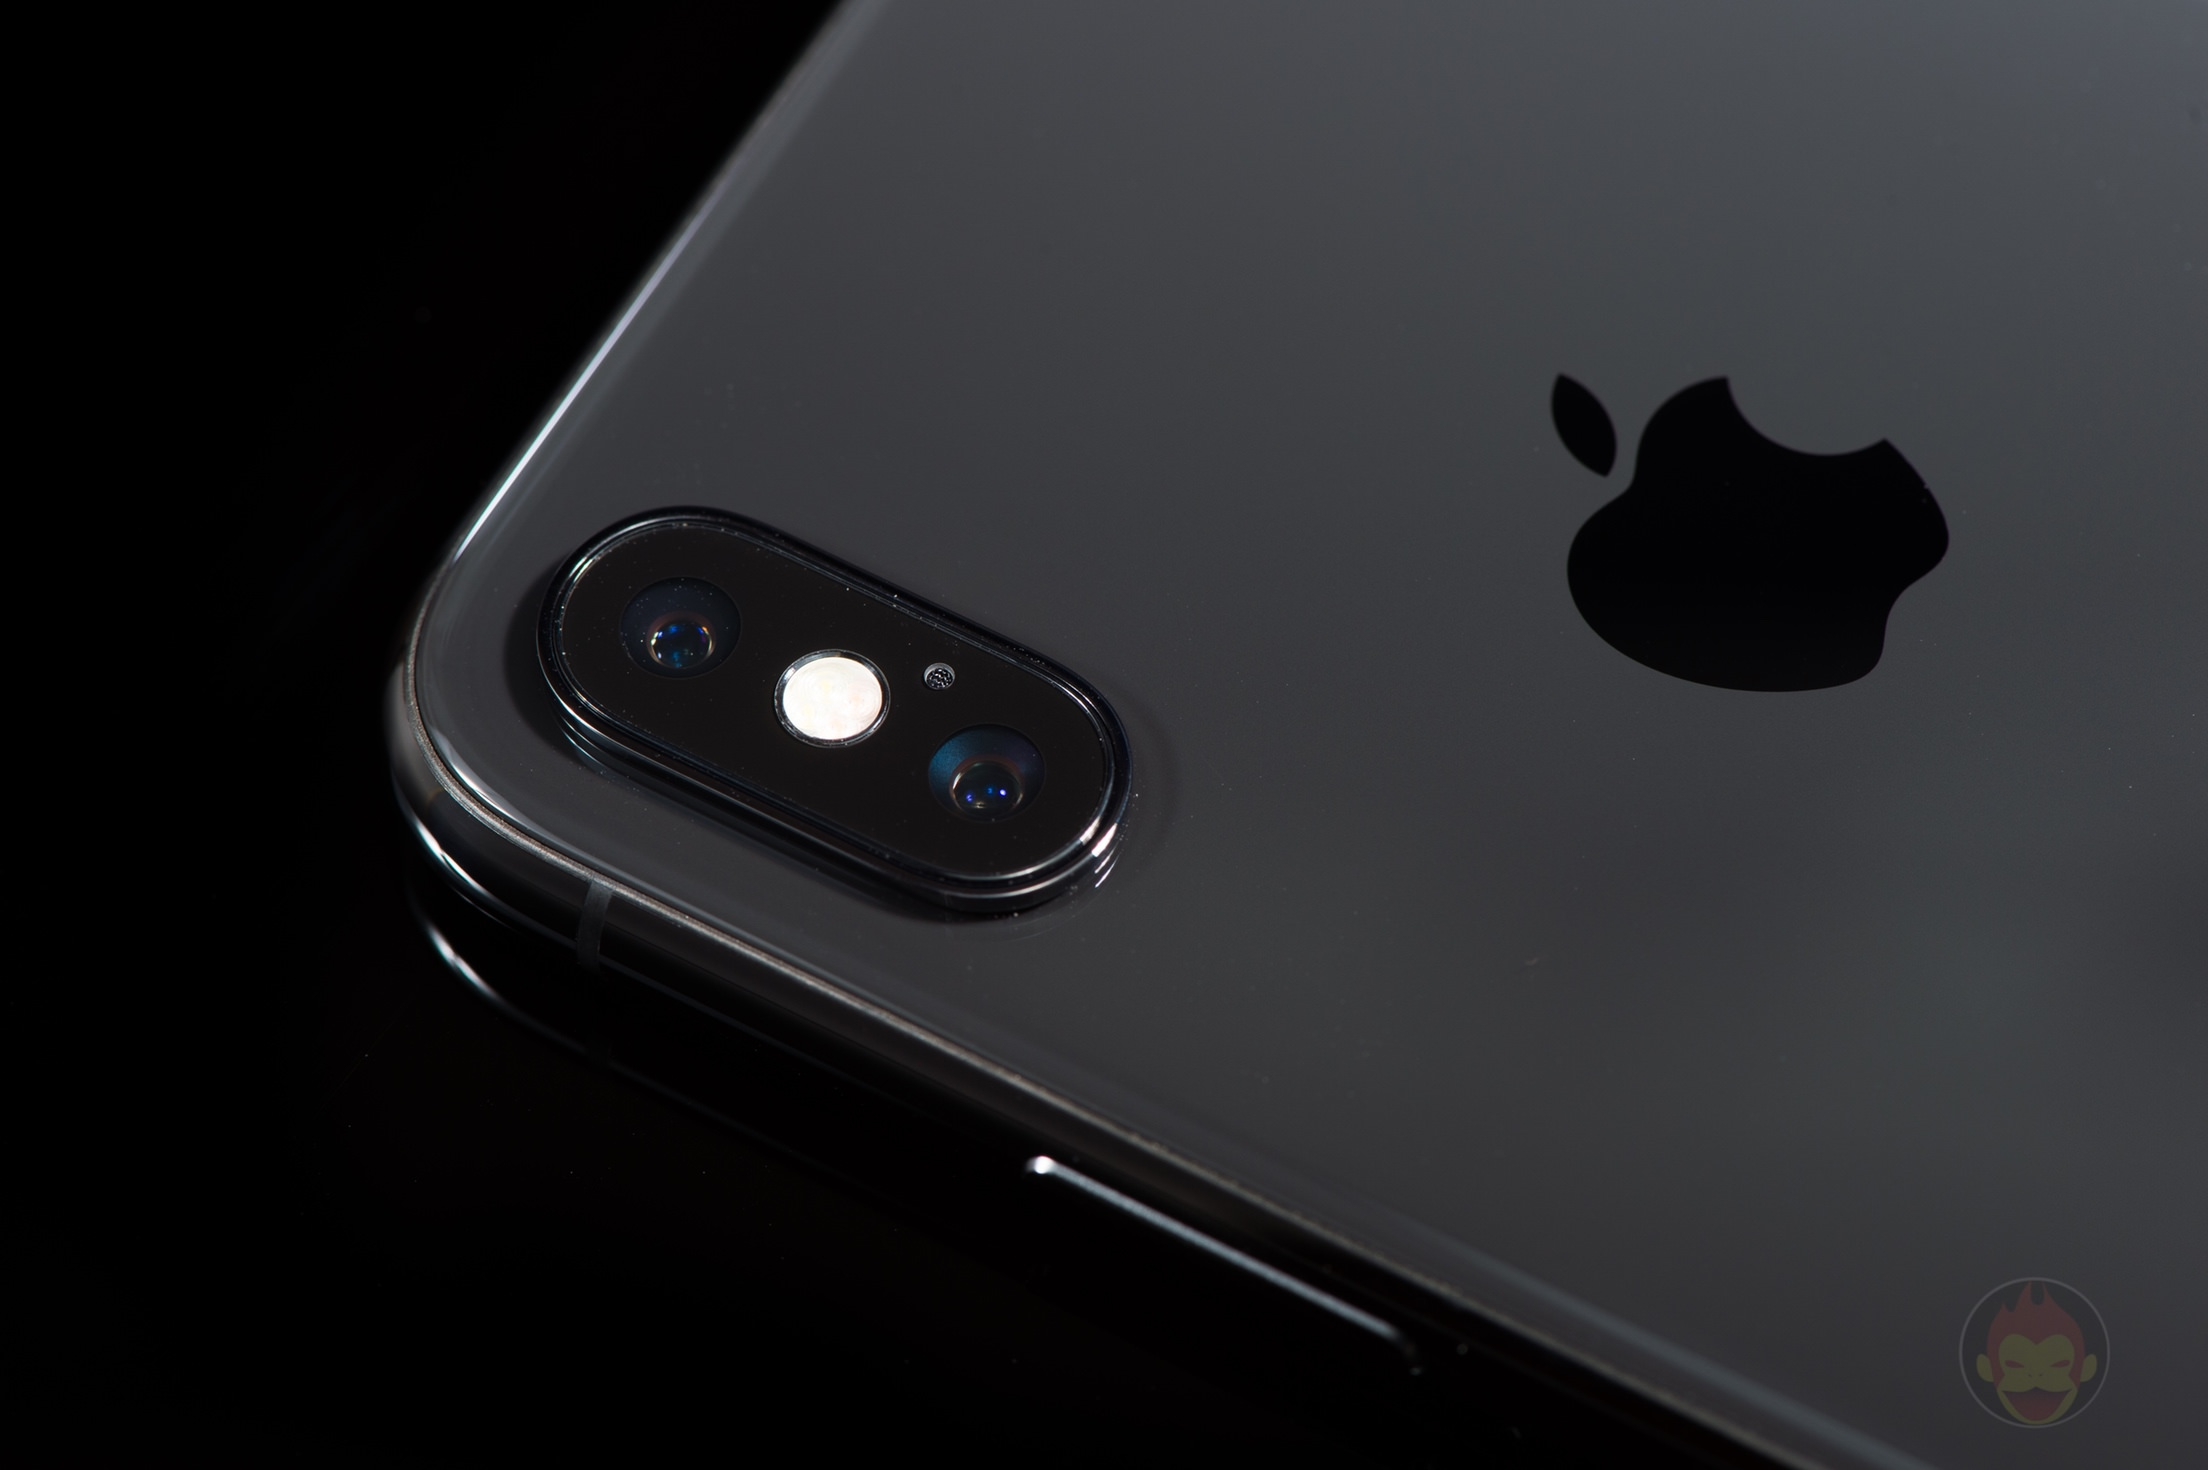 IPhone X Space Gray Review